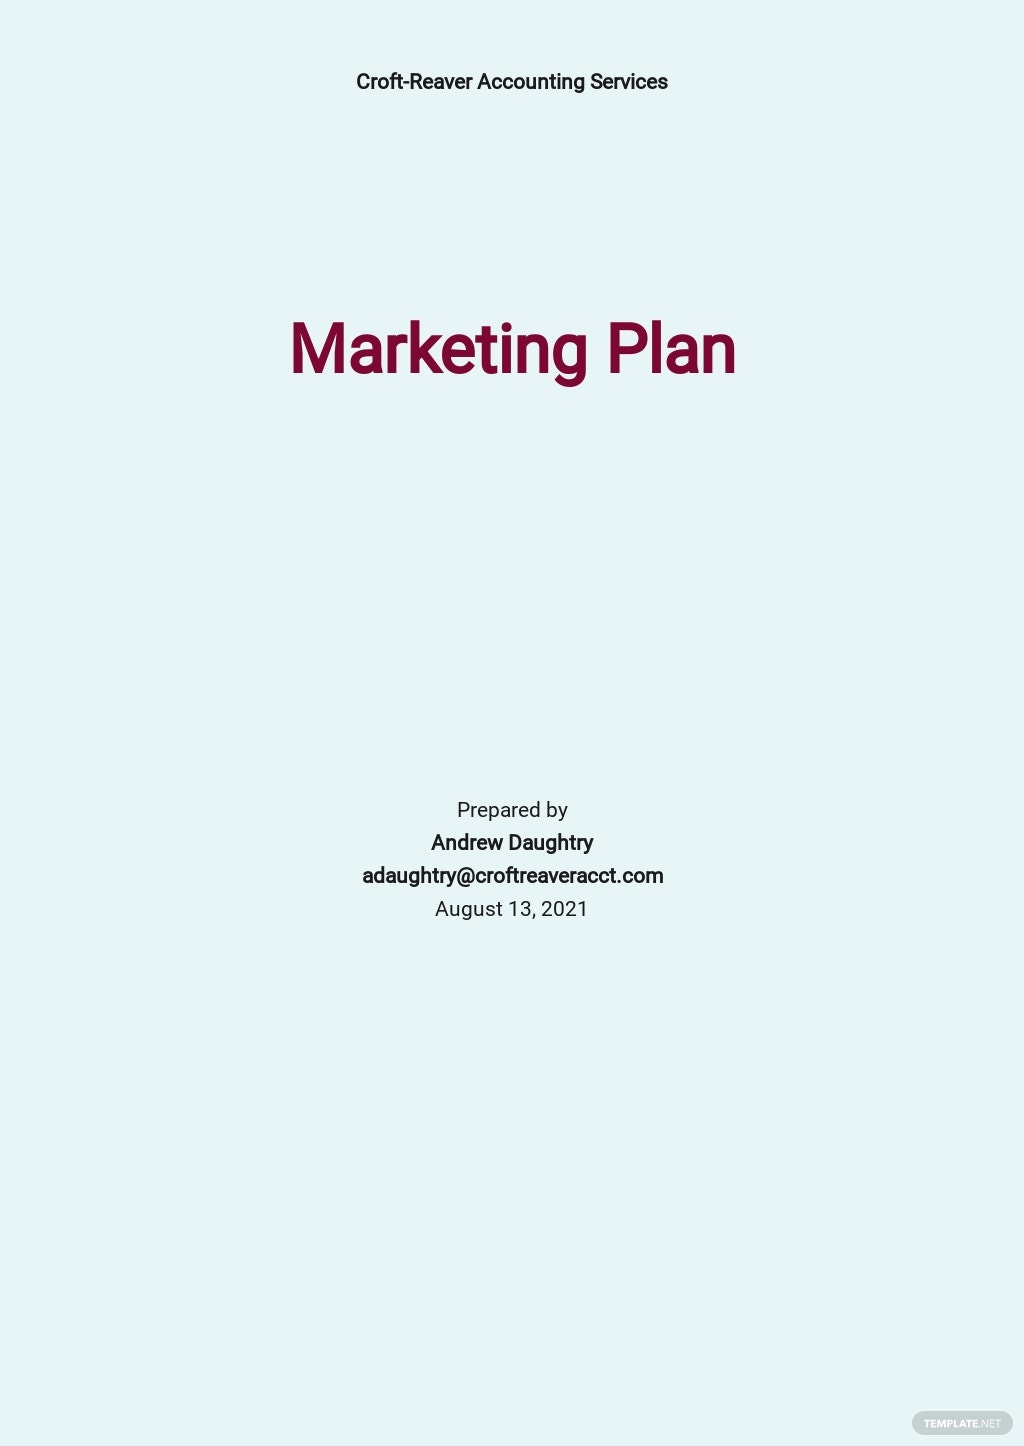 Accounting Firm Marketing Plan Template.jpe